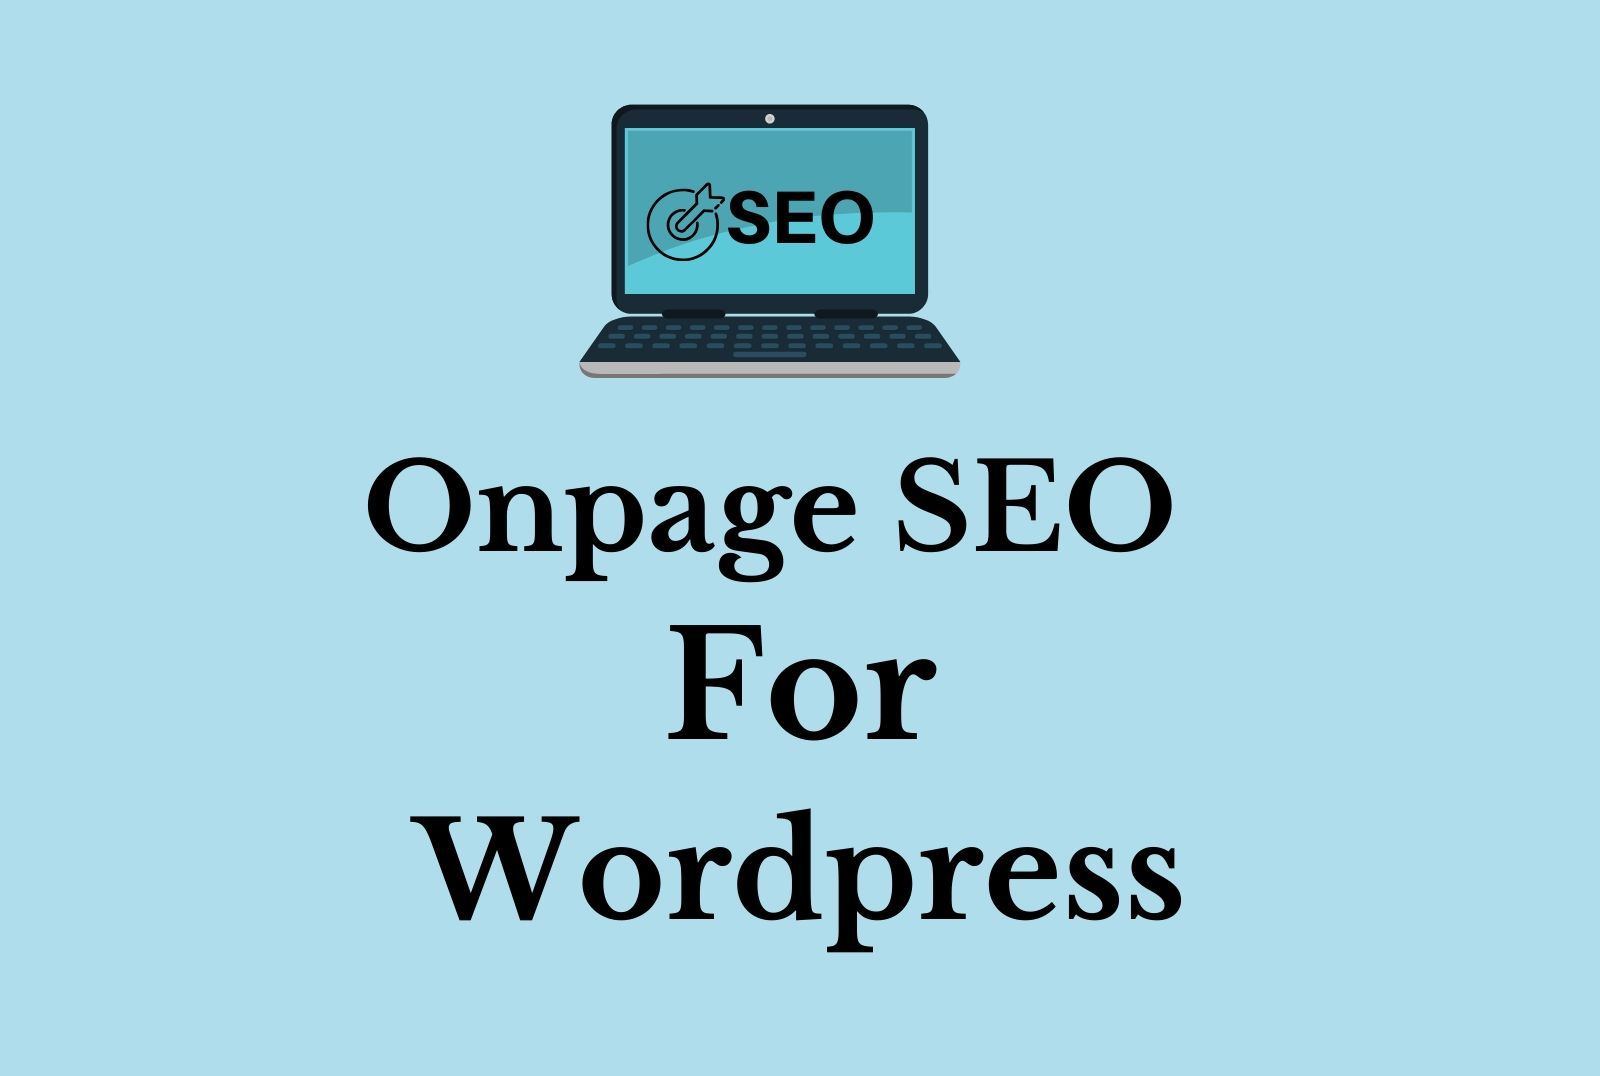 On Page SEO Service for Wordpress